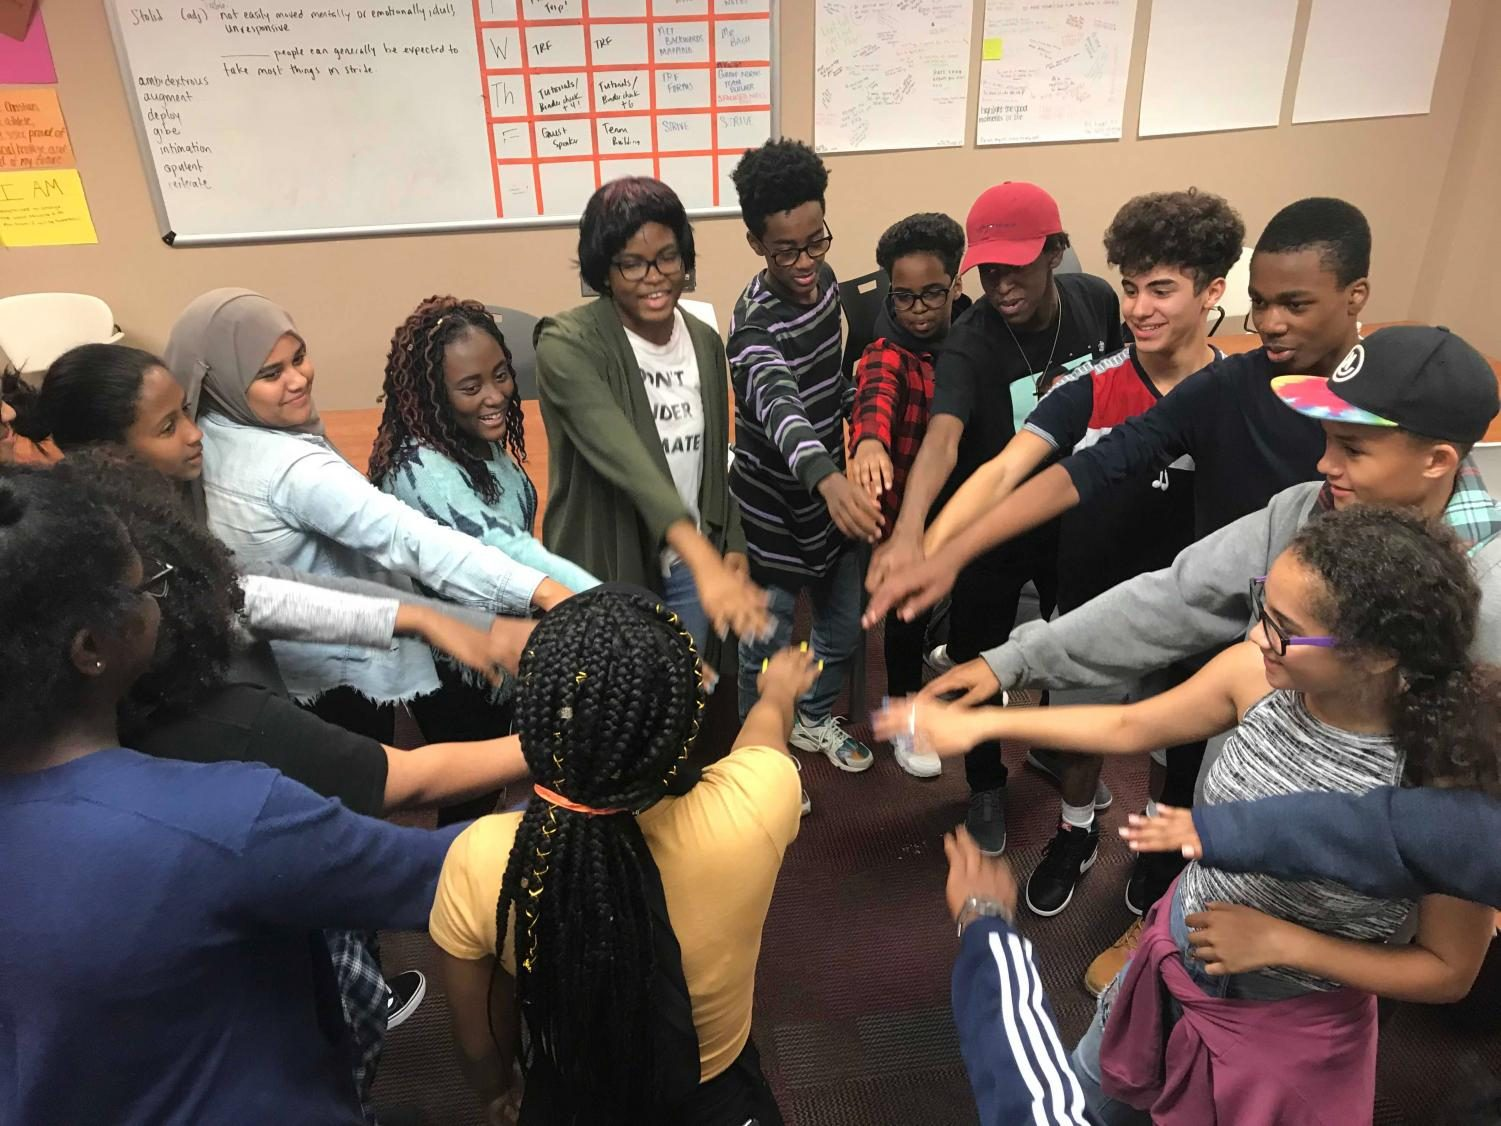 Members of the Black Student Union make a huddle to celebrate a successful meeting. These students form long-lasting bonds through a common ground.